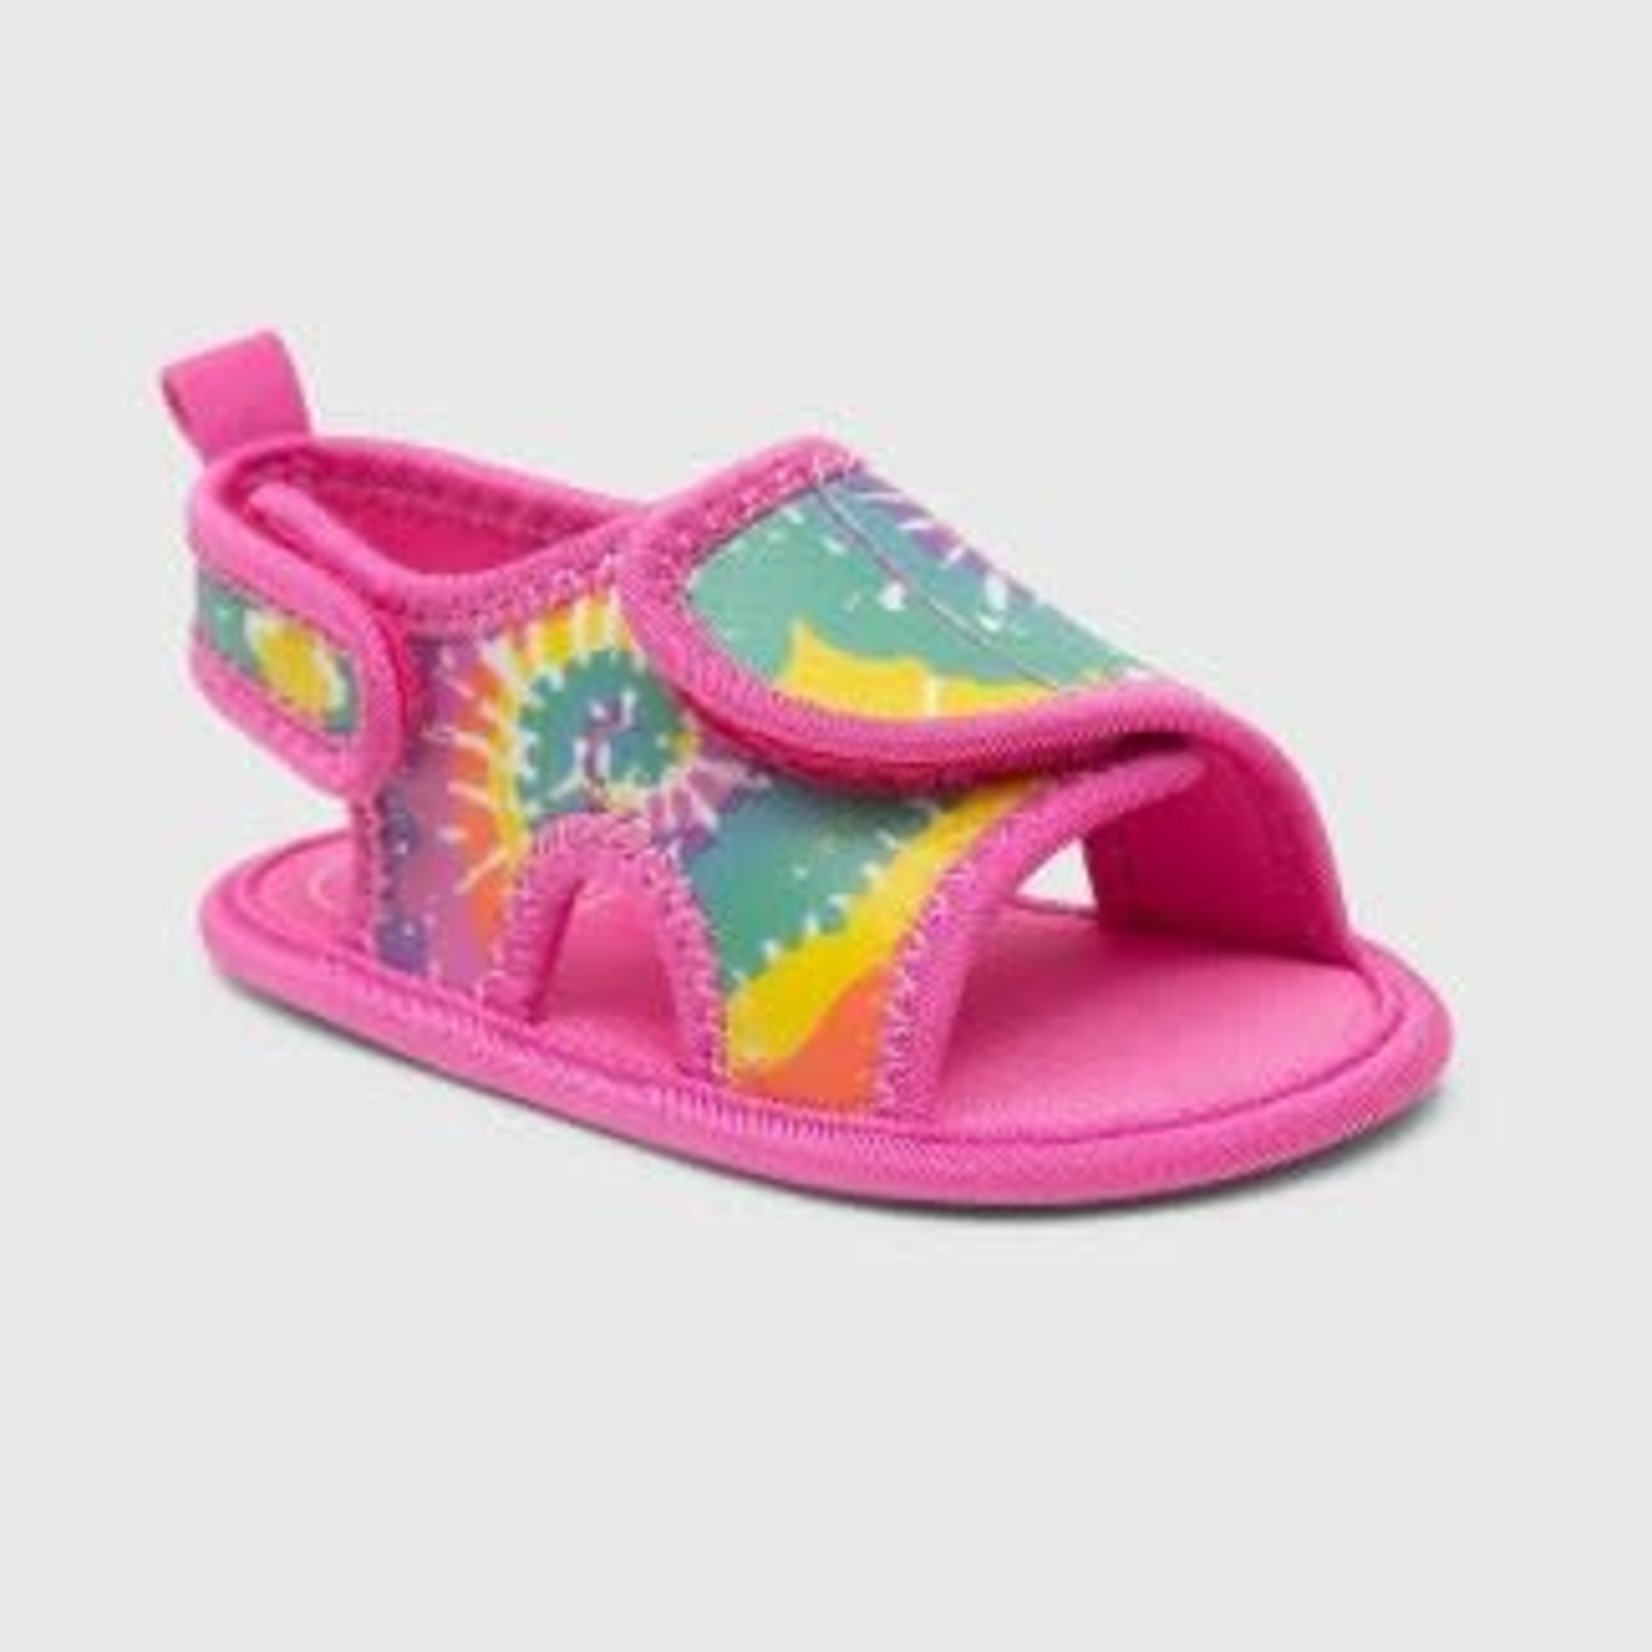 Ro+Me by Robeez Baby Girls' Tie-Dye Ankle Strap Sandals 12-18m